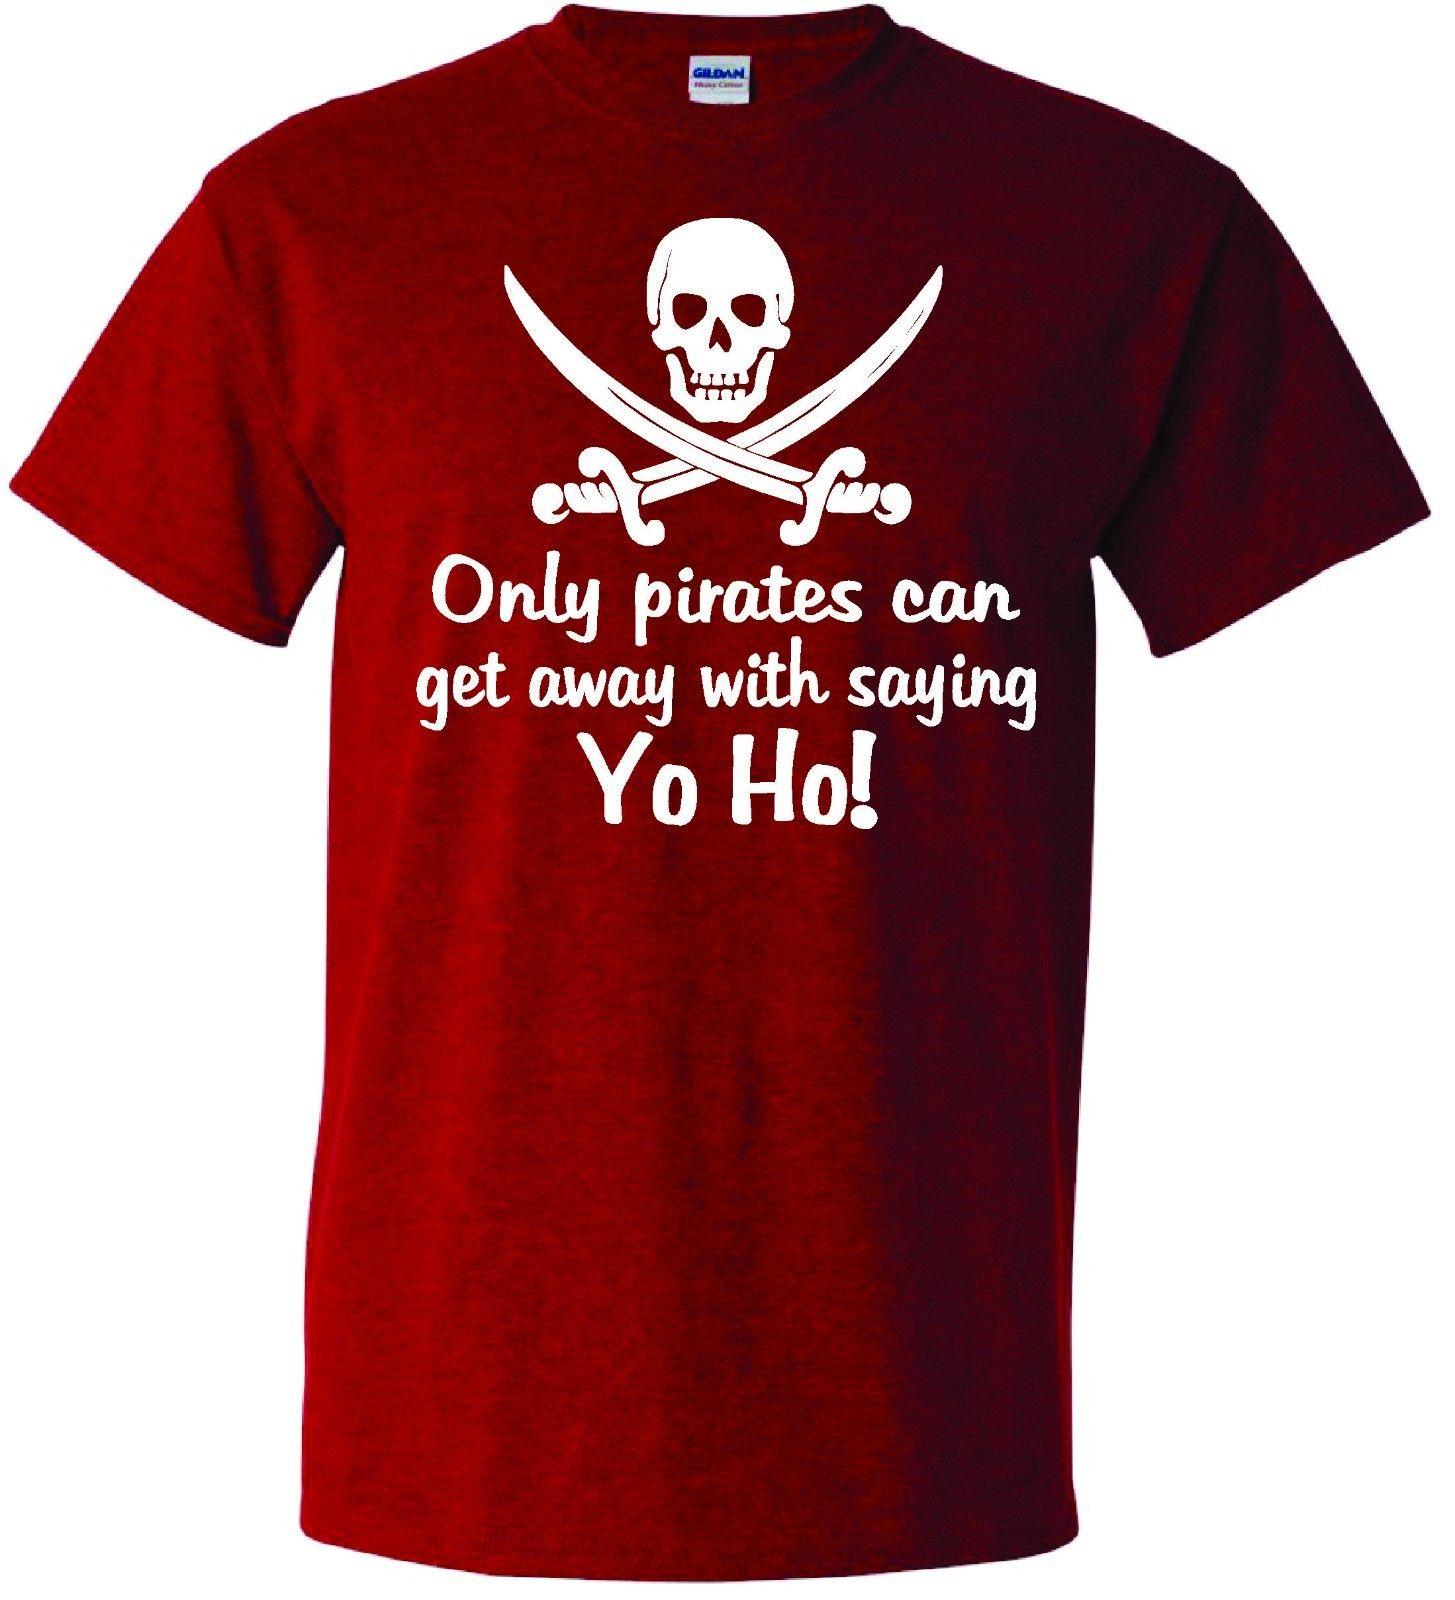 79f6eec2 FUNNY PIRATE T SHIRT TEE GRAPHIC RUM DRINKING ALCOHOL COLLEGE PARTY HUMOR  ARR Funny Unisex Casual Top Shirt Mens T Shirts Funny Shirts From  Countrysidelocks ...